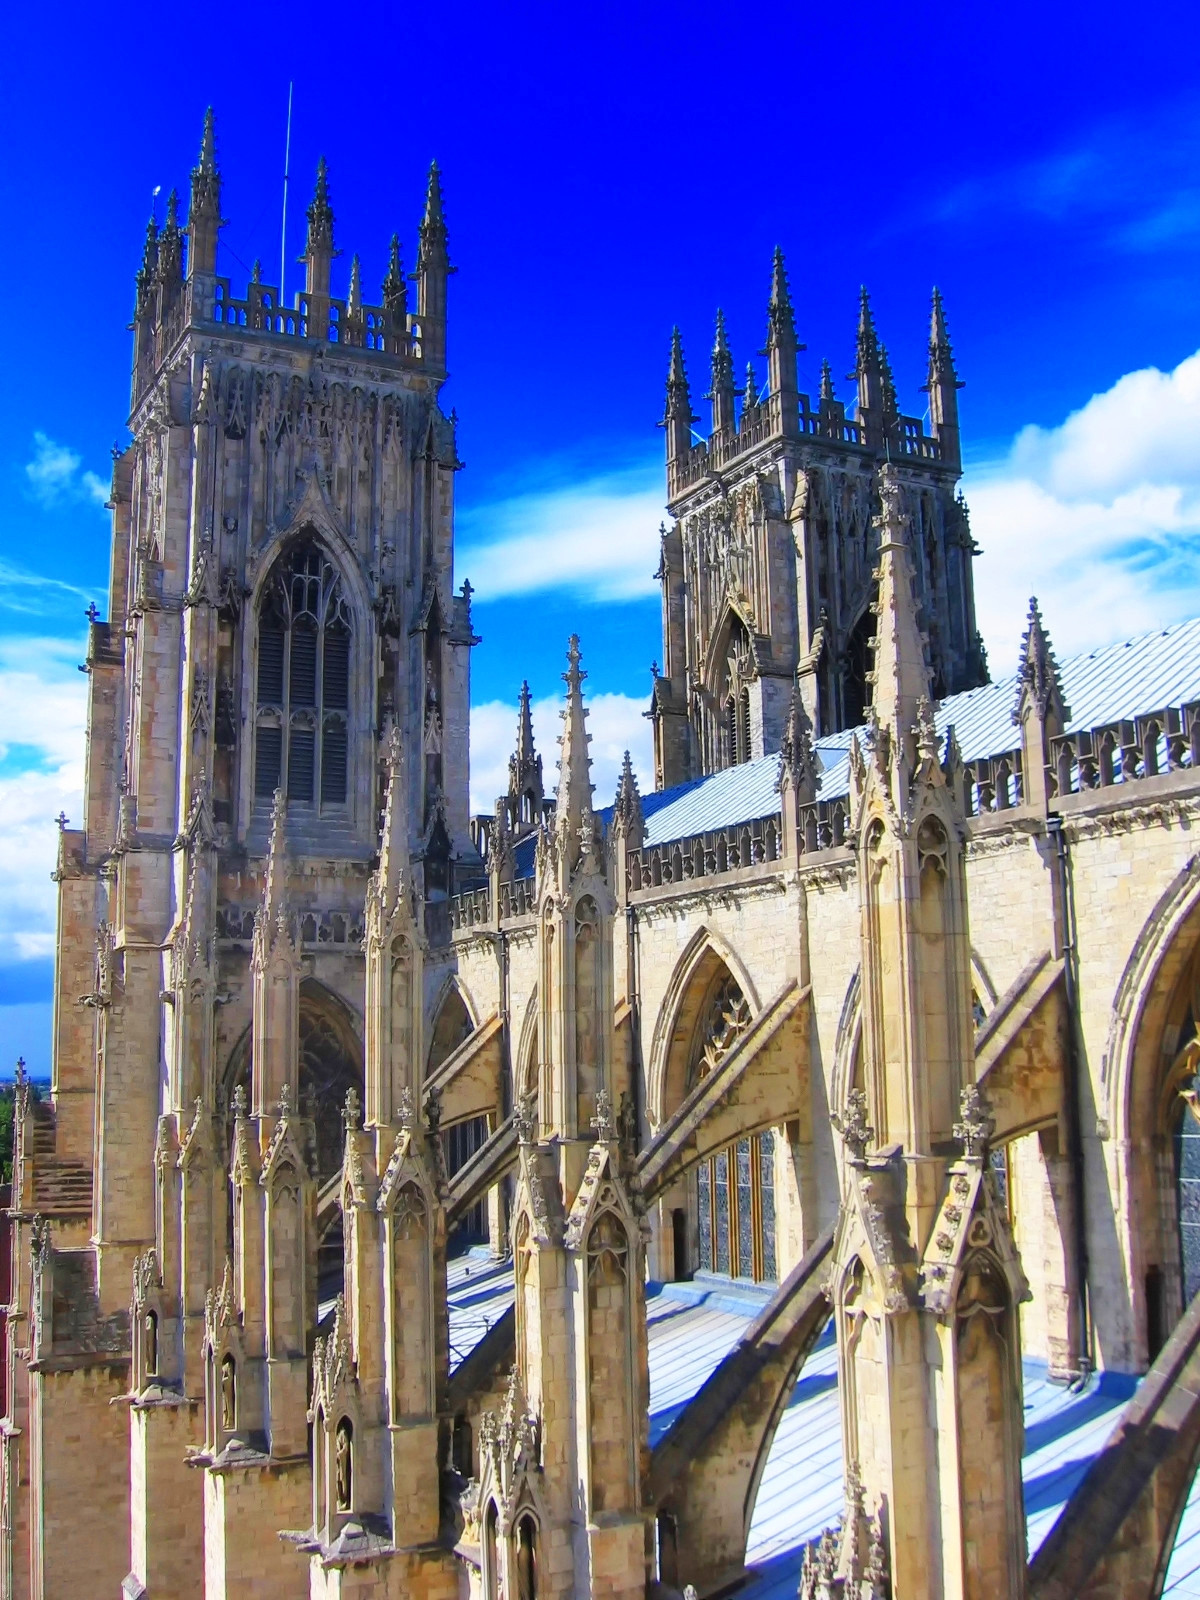 York Minster. Credit Saste